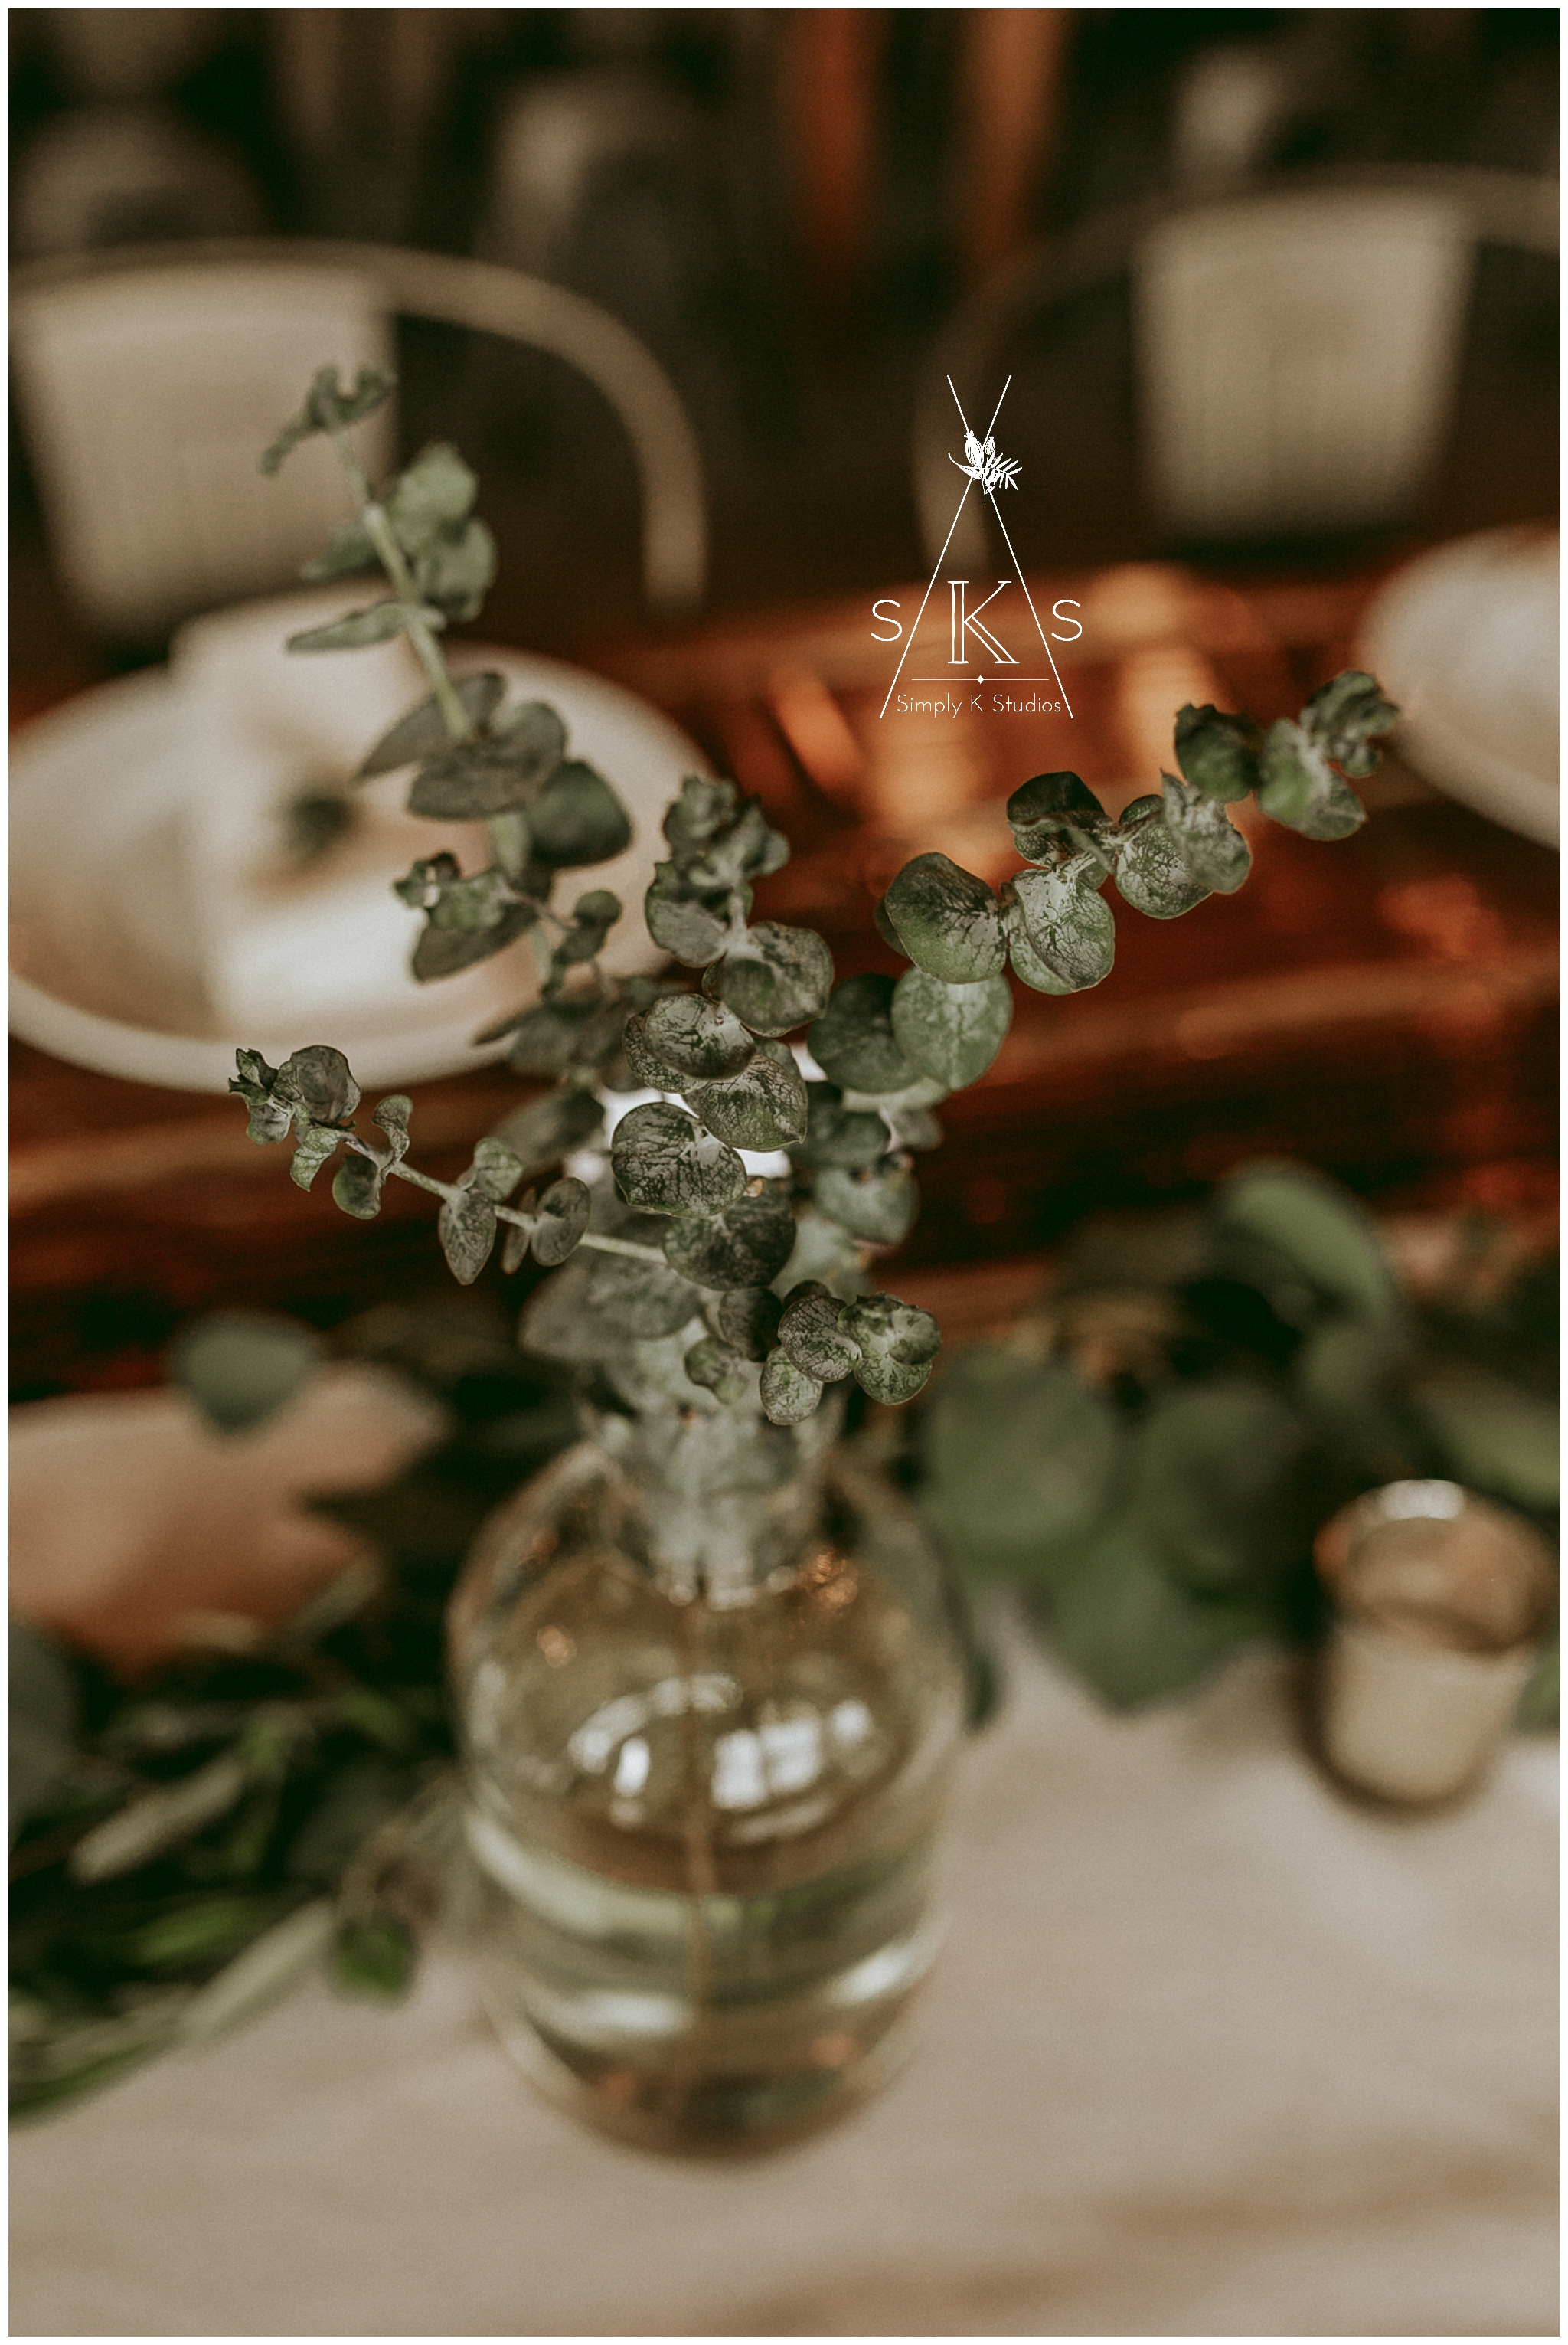 68 Eucalyptus Centerpieces at a Wedding.jpg